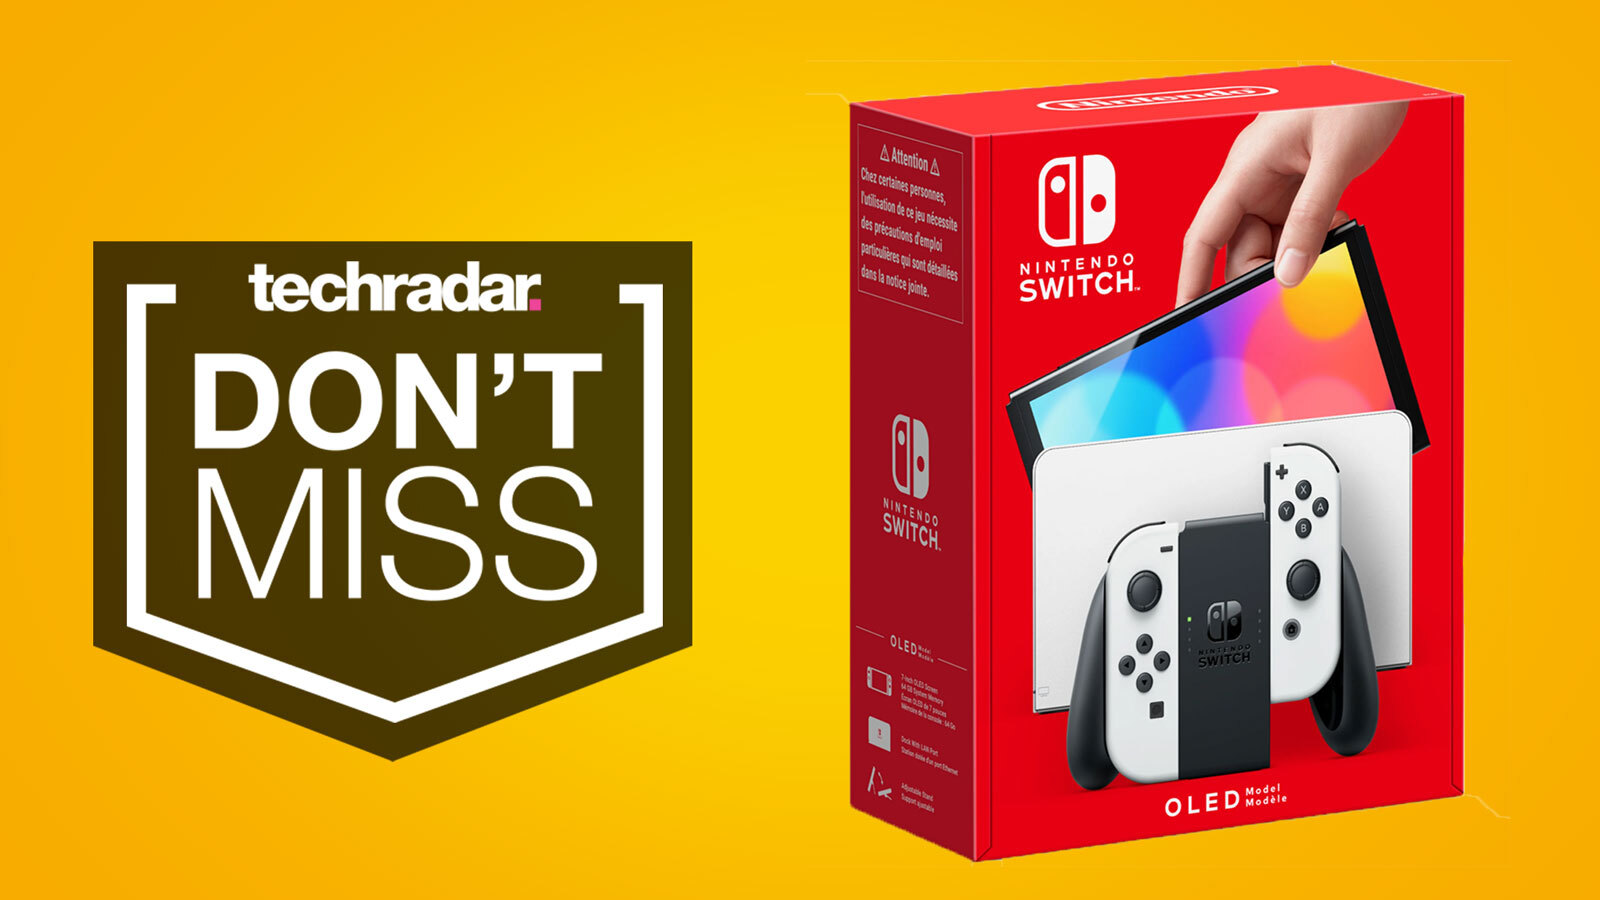 nintendo-switch-oled-pre-order:-what-time-to-get-it-today-at-best-buy,-target-and-amazon